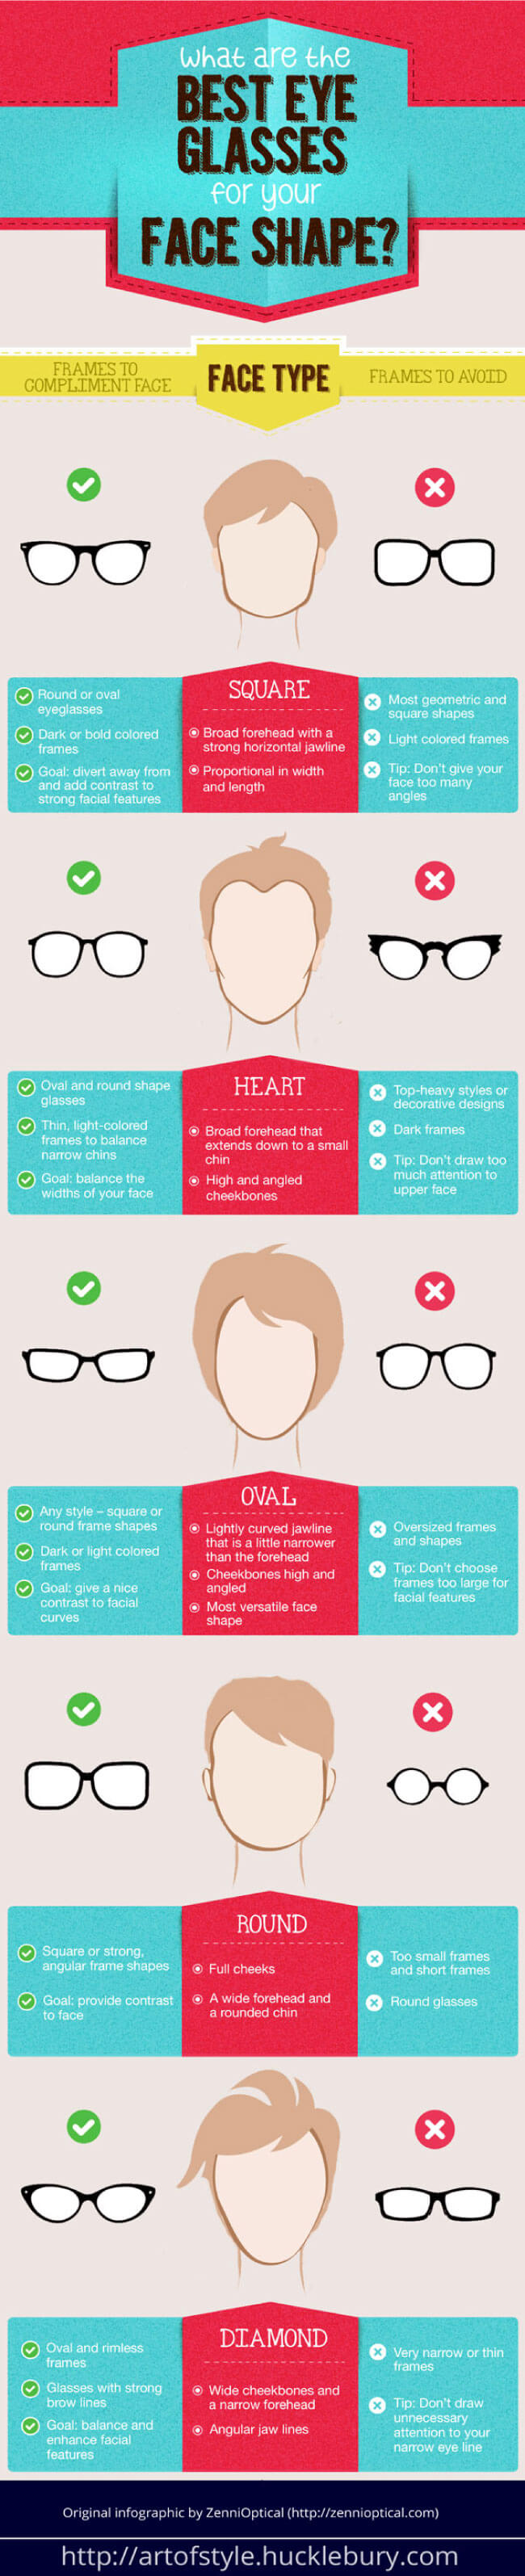 Image titled Tips to Choose the Best Men's Glasses for Your Face Shape